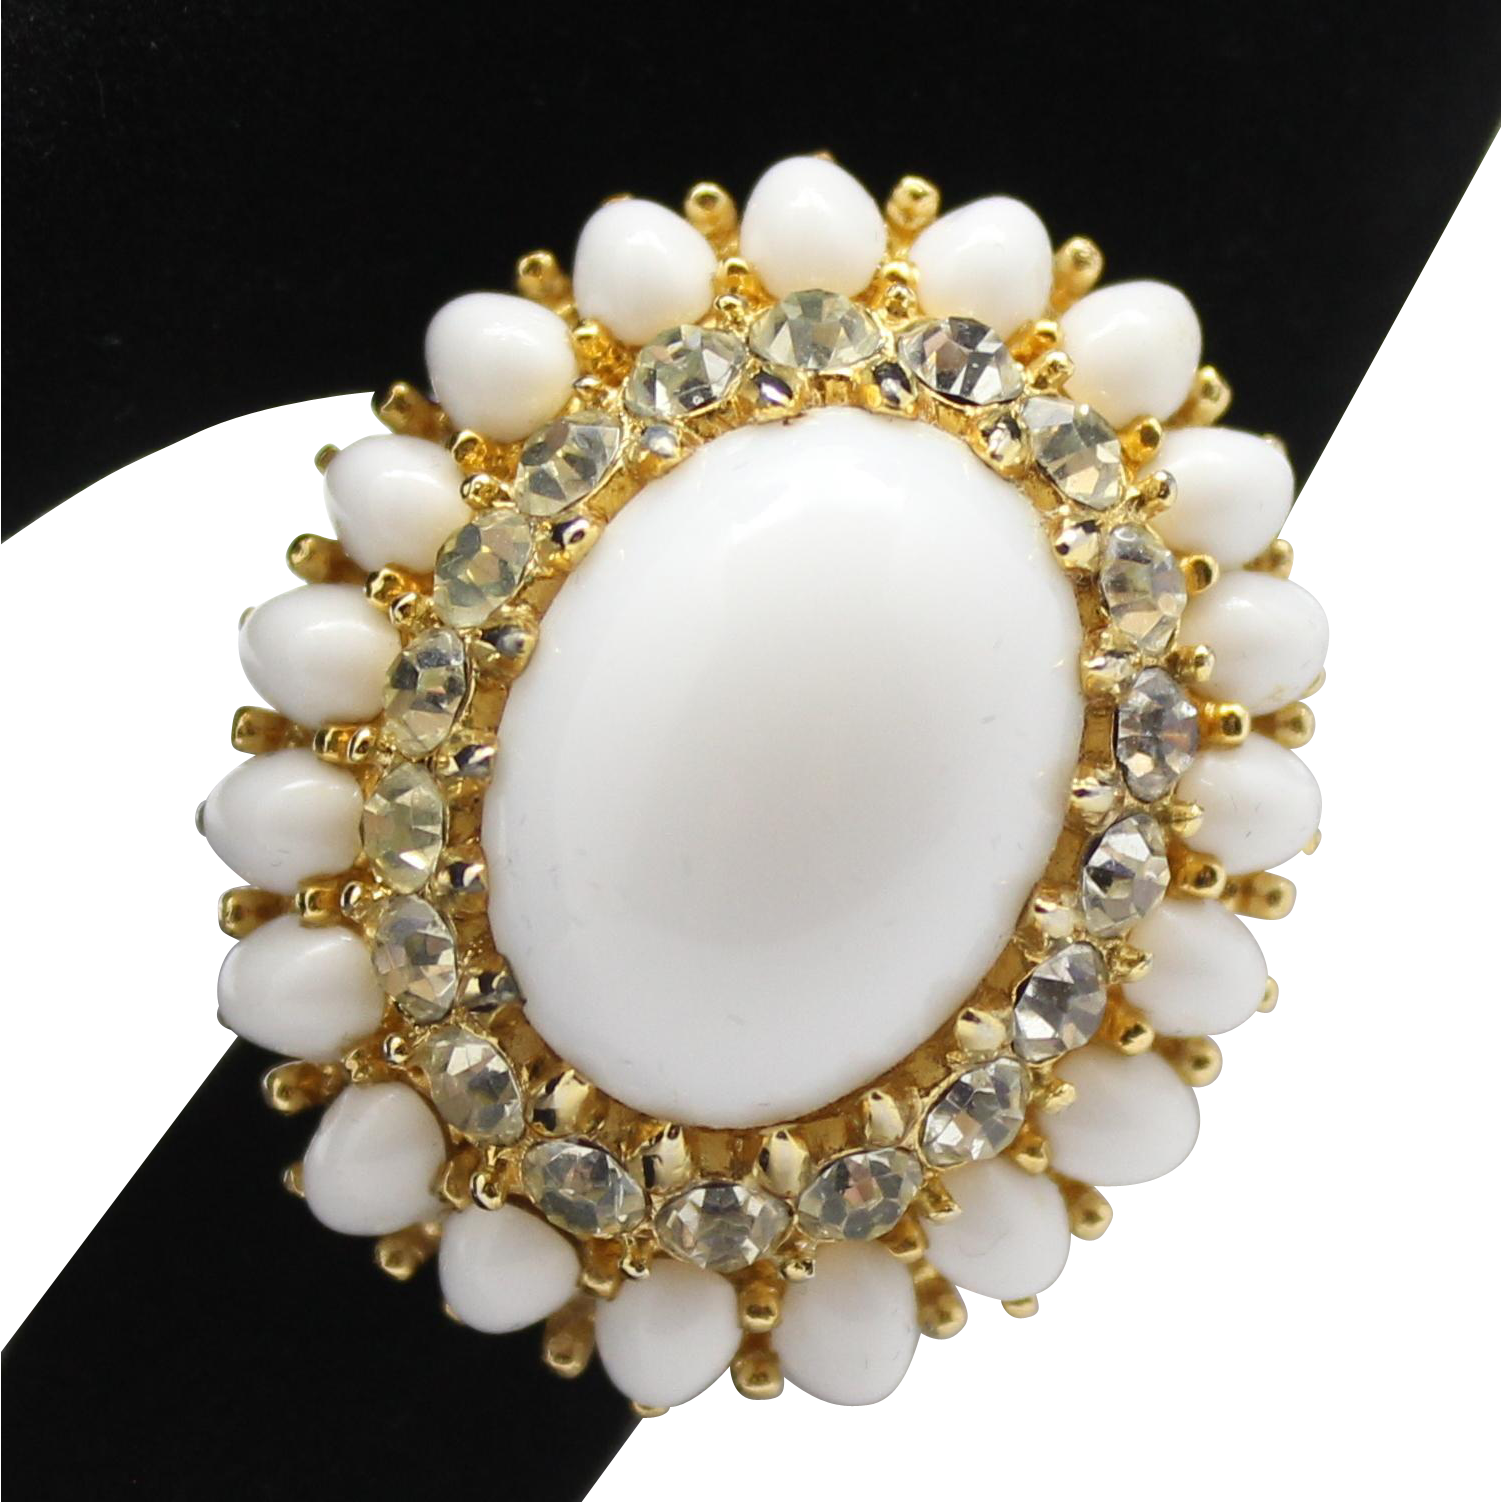 Vintage Jomaz White Cabochon & Clear Rhinestone Adjustable Cocktail Ring